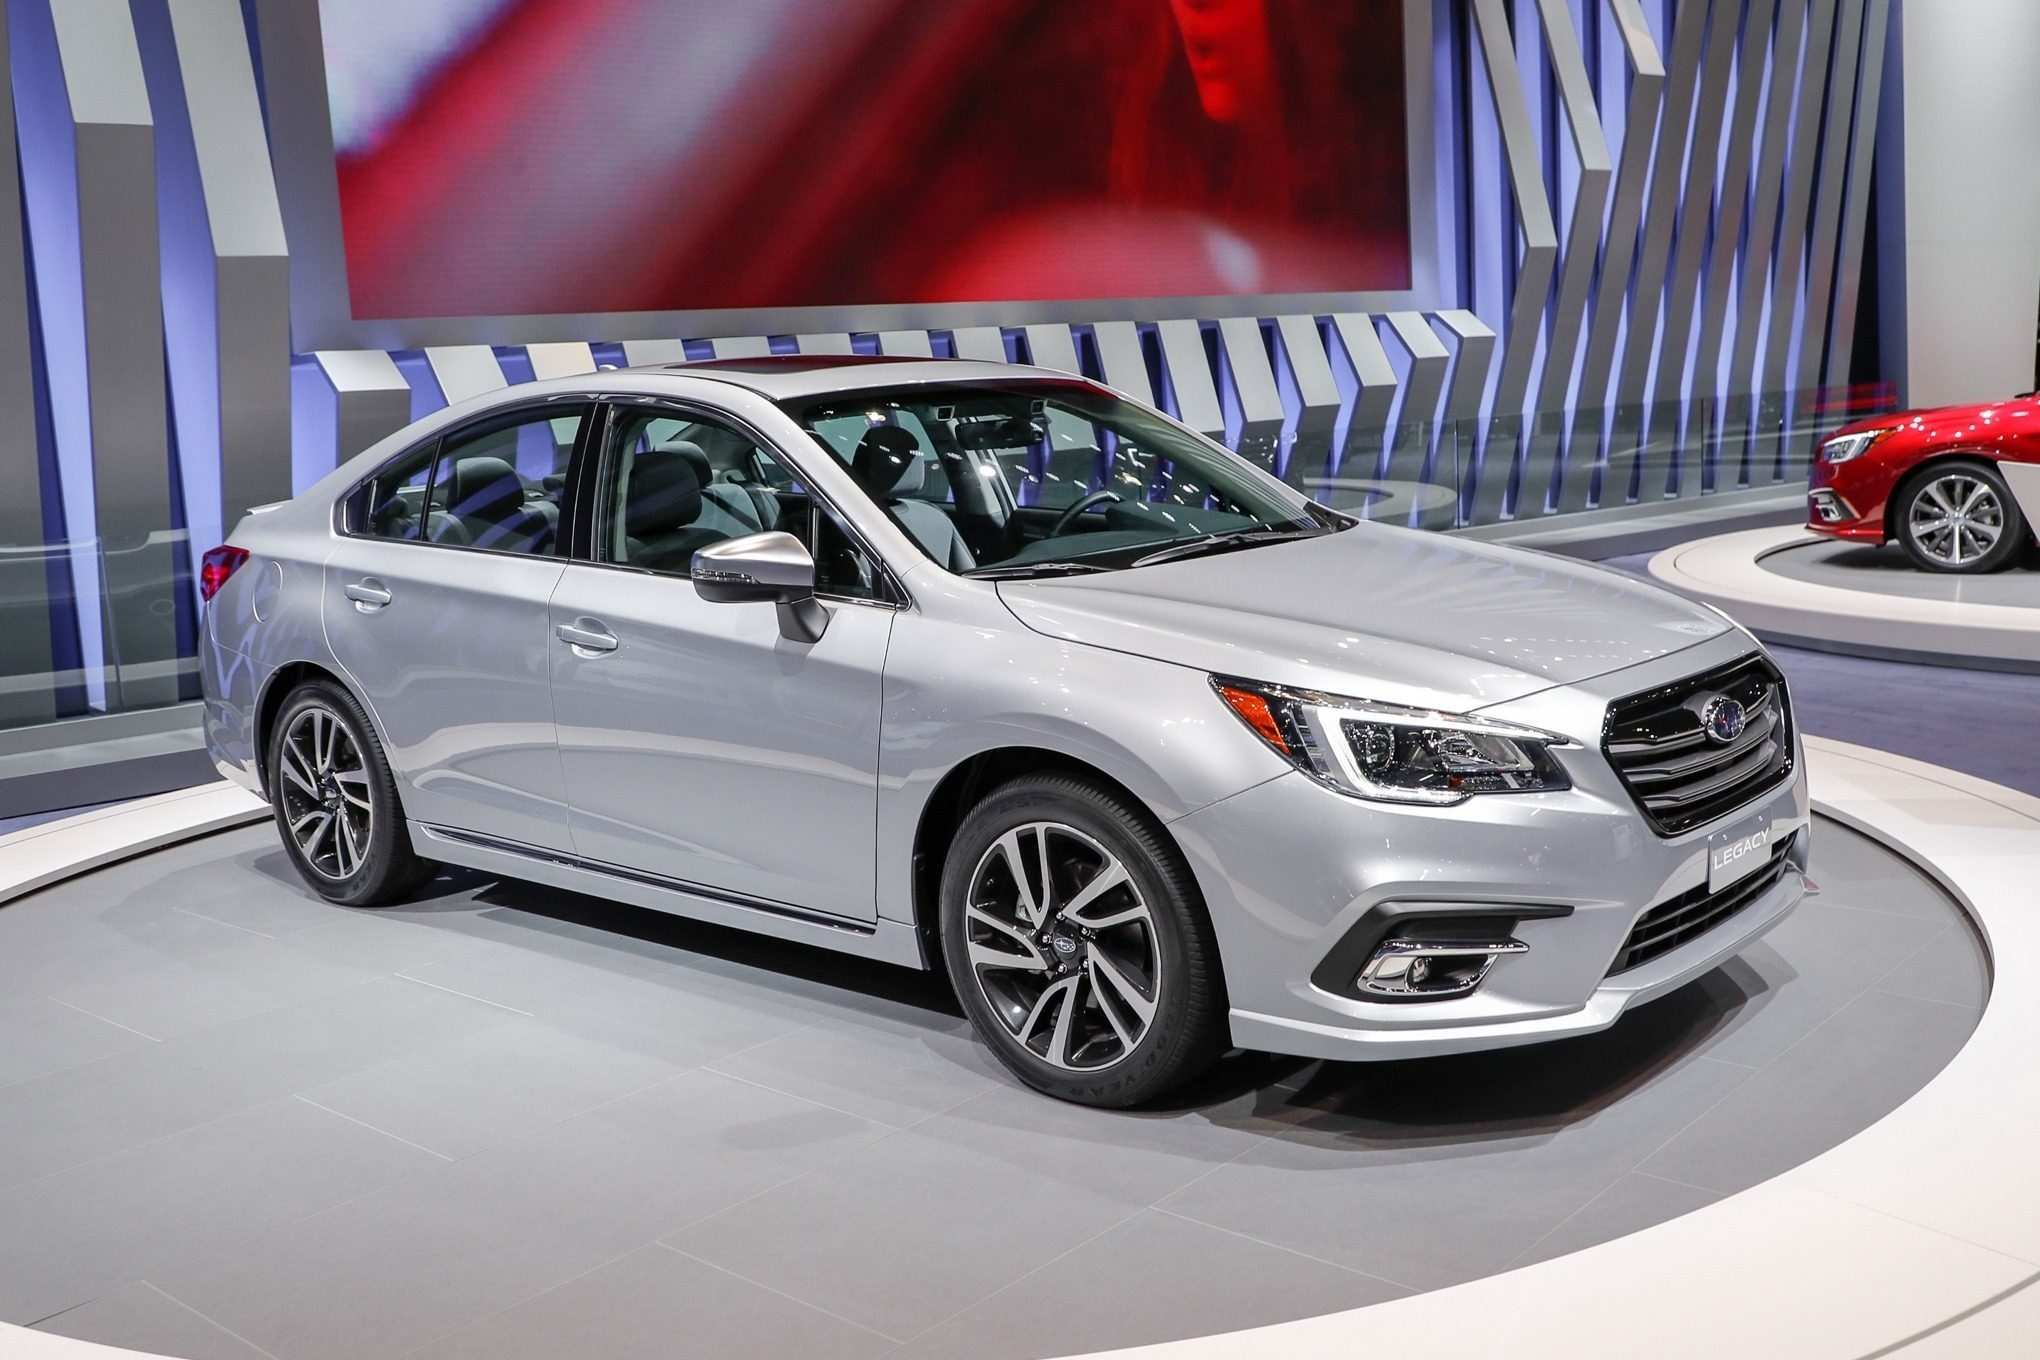 23 Best Review Subaru Redesign 2019 Redesign for Subaru Redesign 2019